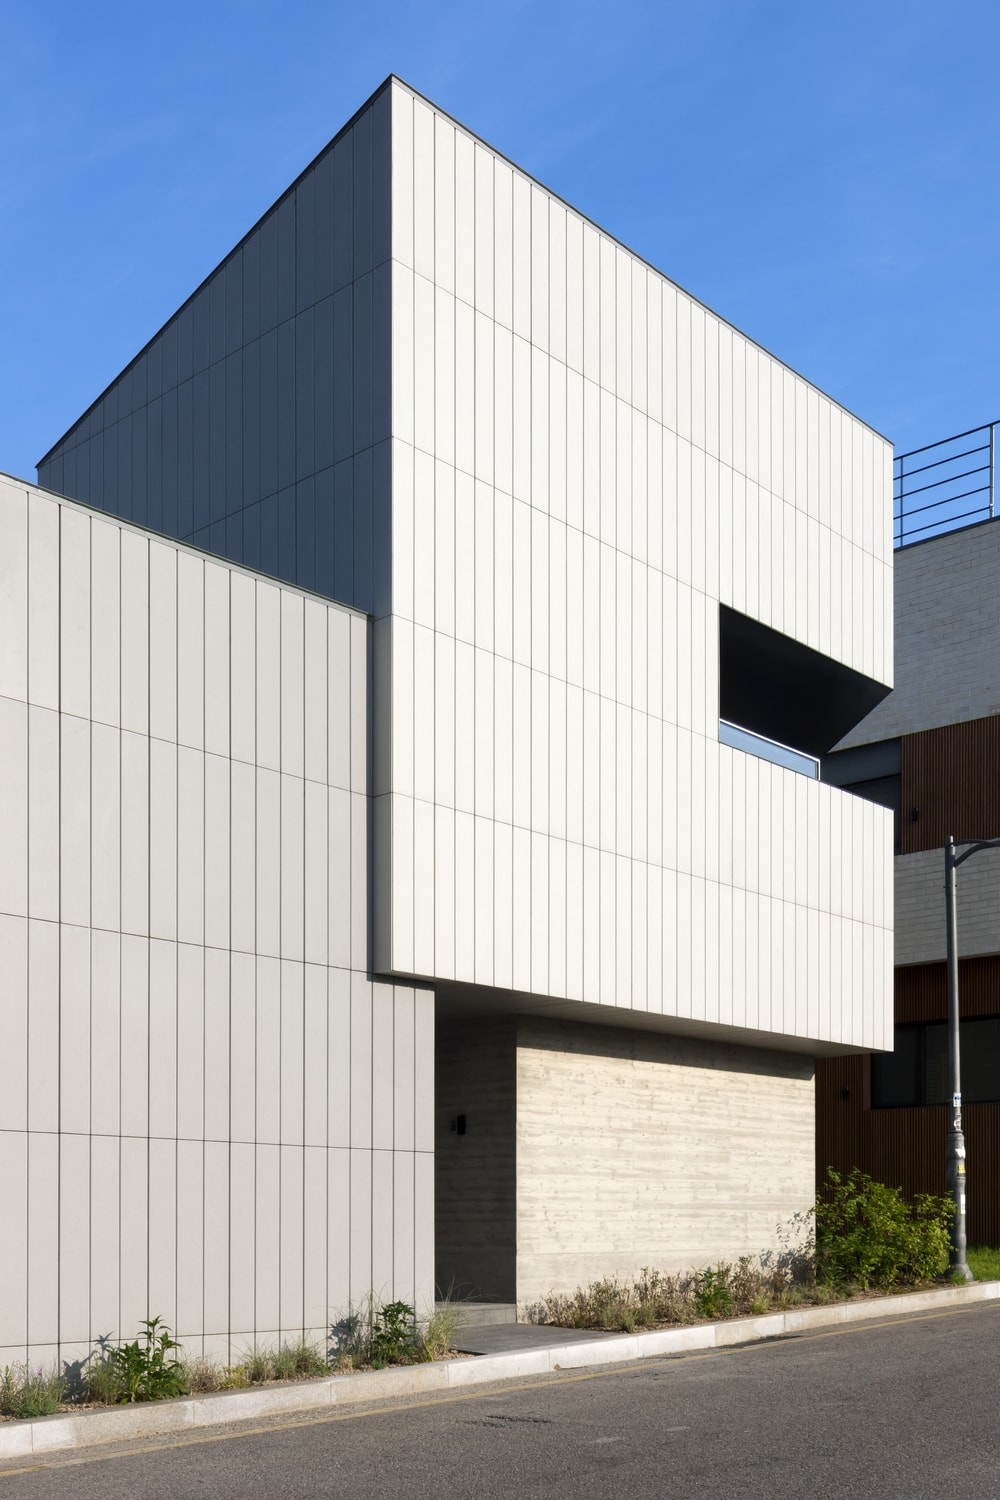 This view of the front of the house shows the shrubs that line the walls to complement the light gray modern panels.